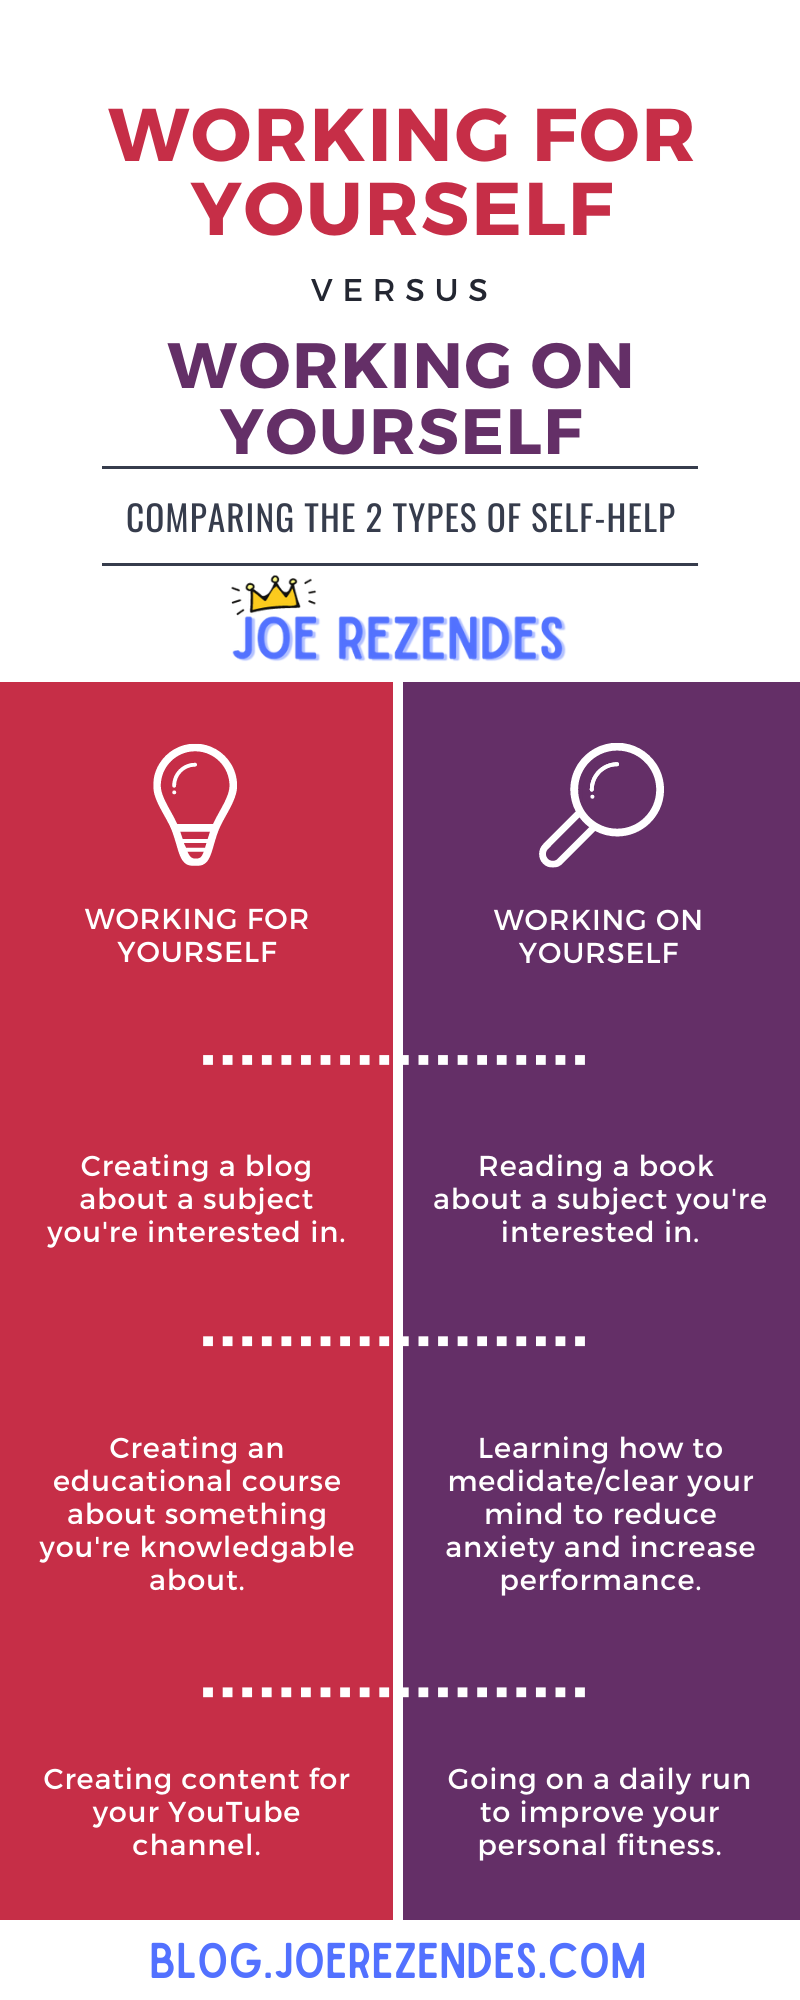 Working for yourself vs working on yourself infographic